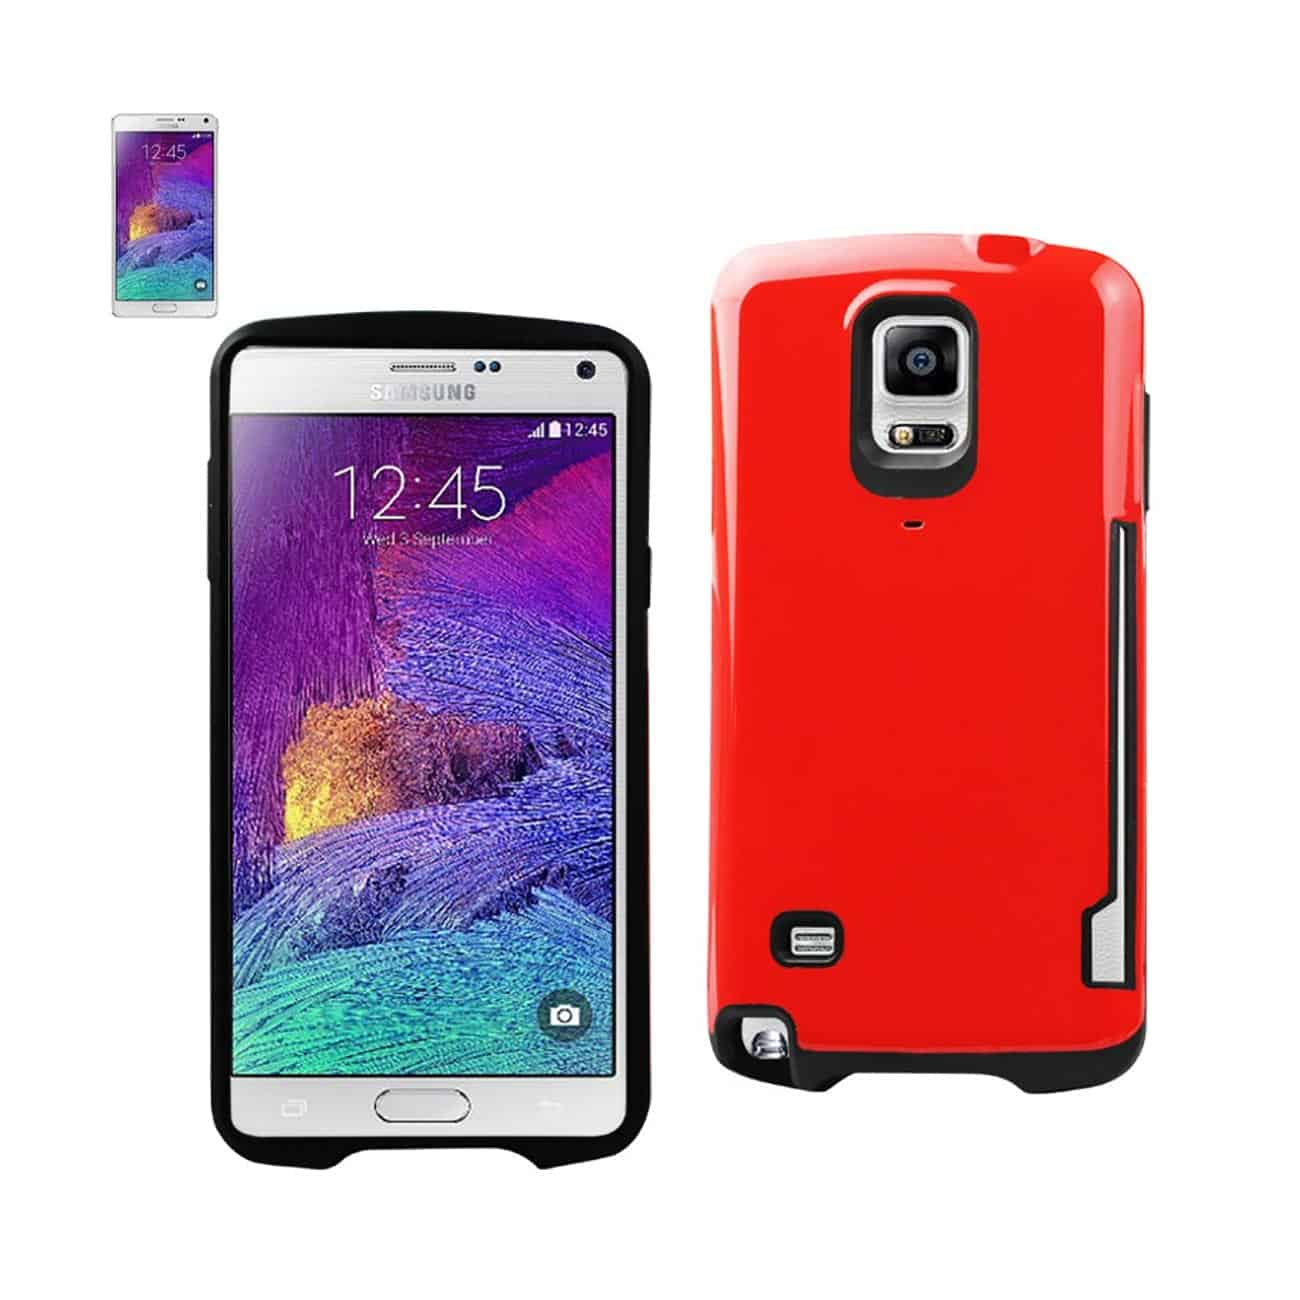 SAMSUNG GALAXY NOTE 4 CANDY SHIELD CASE WITH CARD HOLDER IN RED